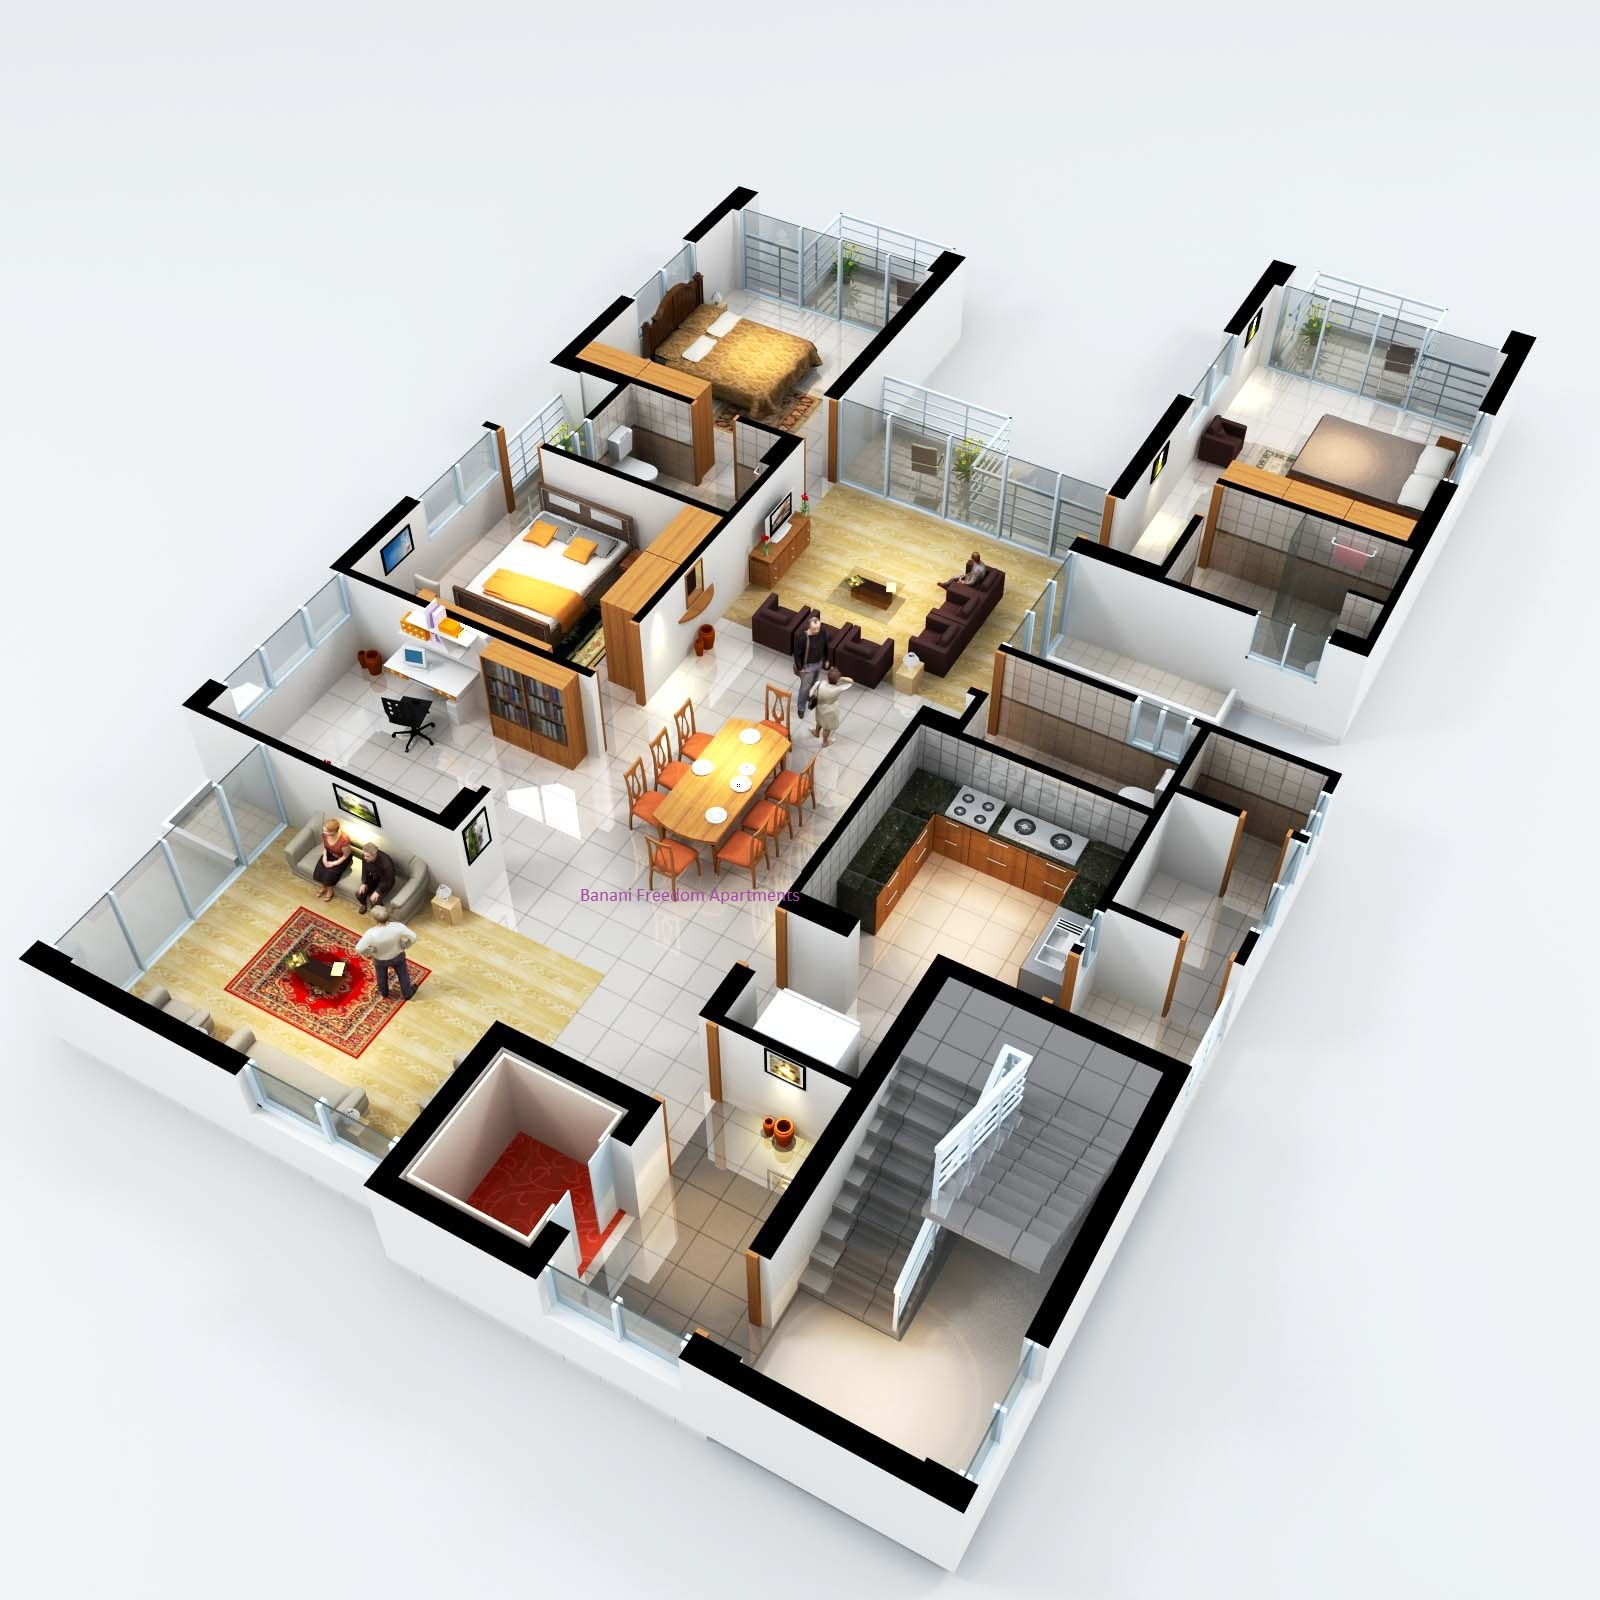 Banani freedom luxury apartments for Plans en 3d